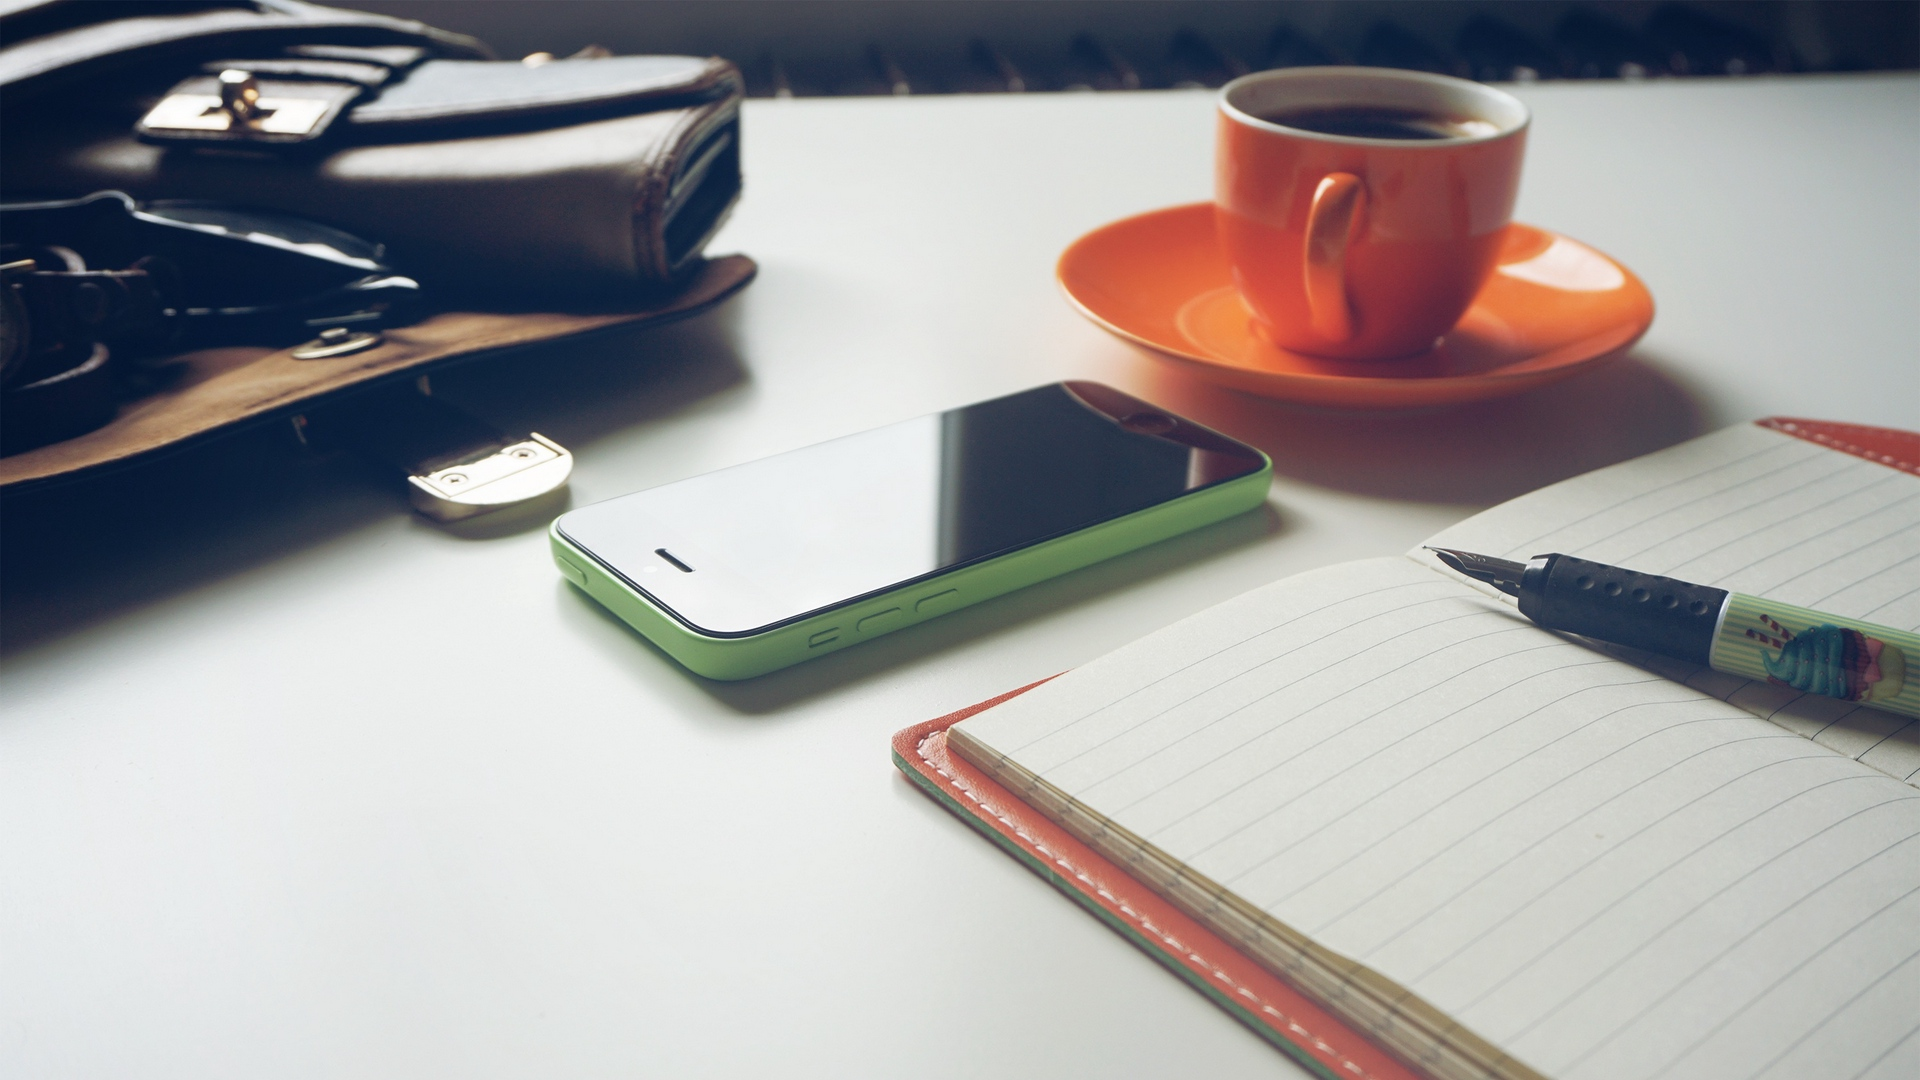 cell phone, cup of coffee and notebook